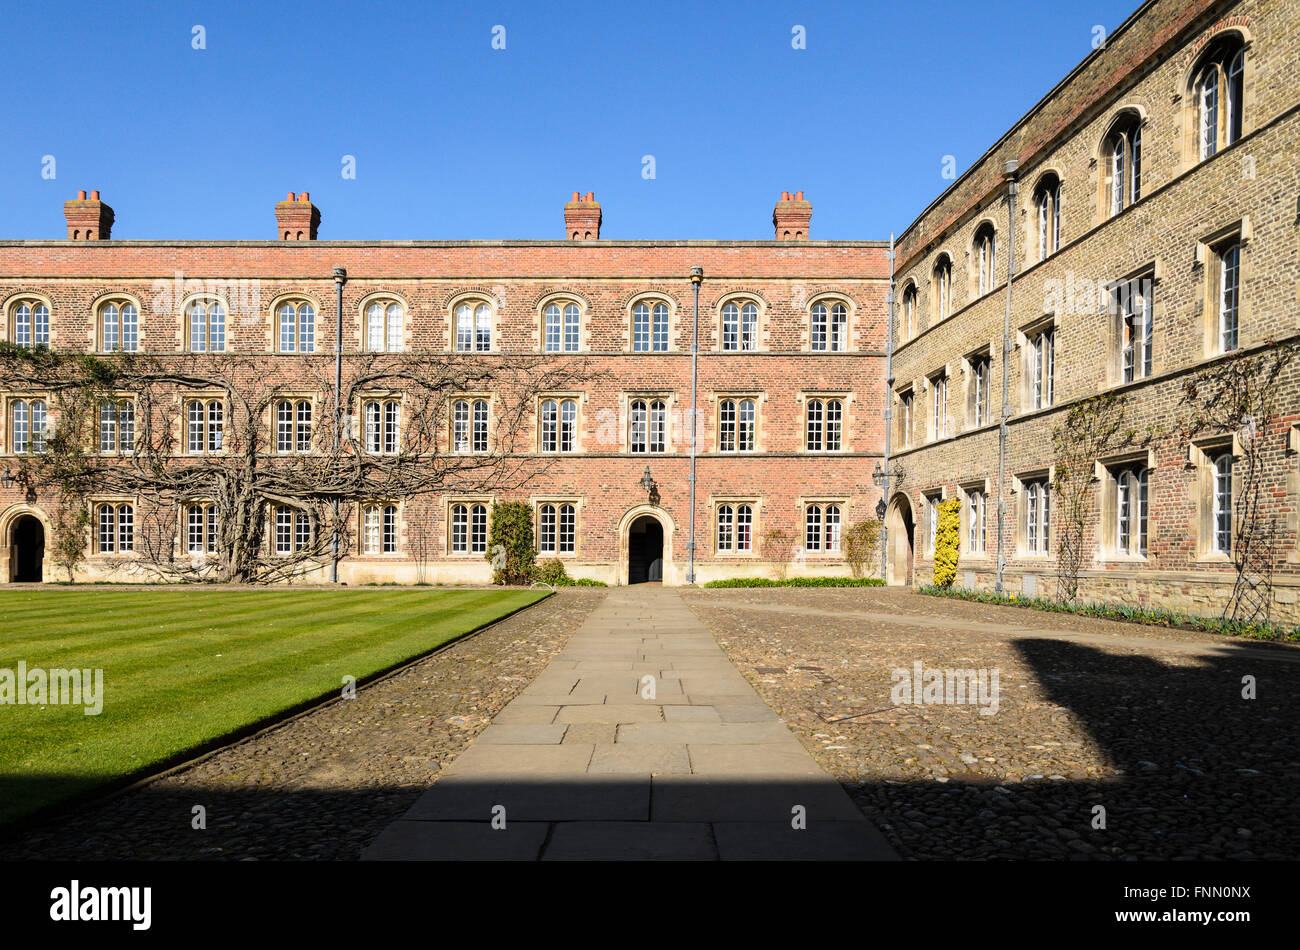 Jesus College, University of Cambridge, Cambridge, England, UK.Stock Photo